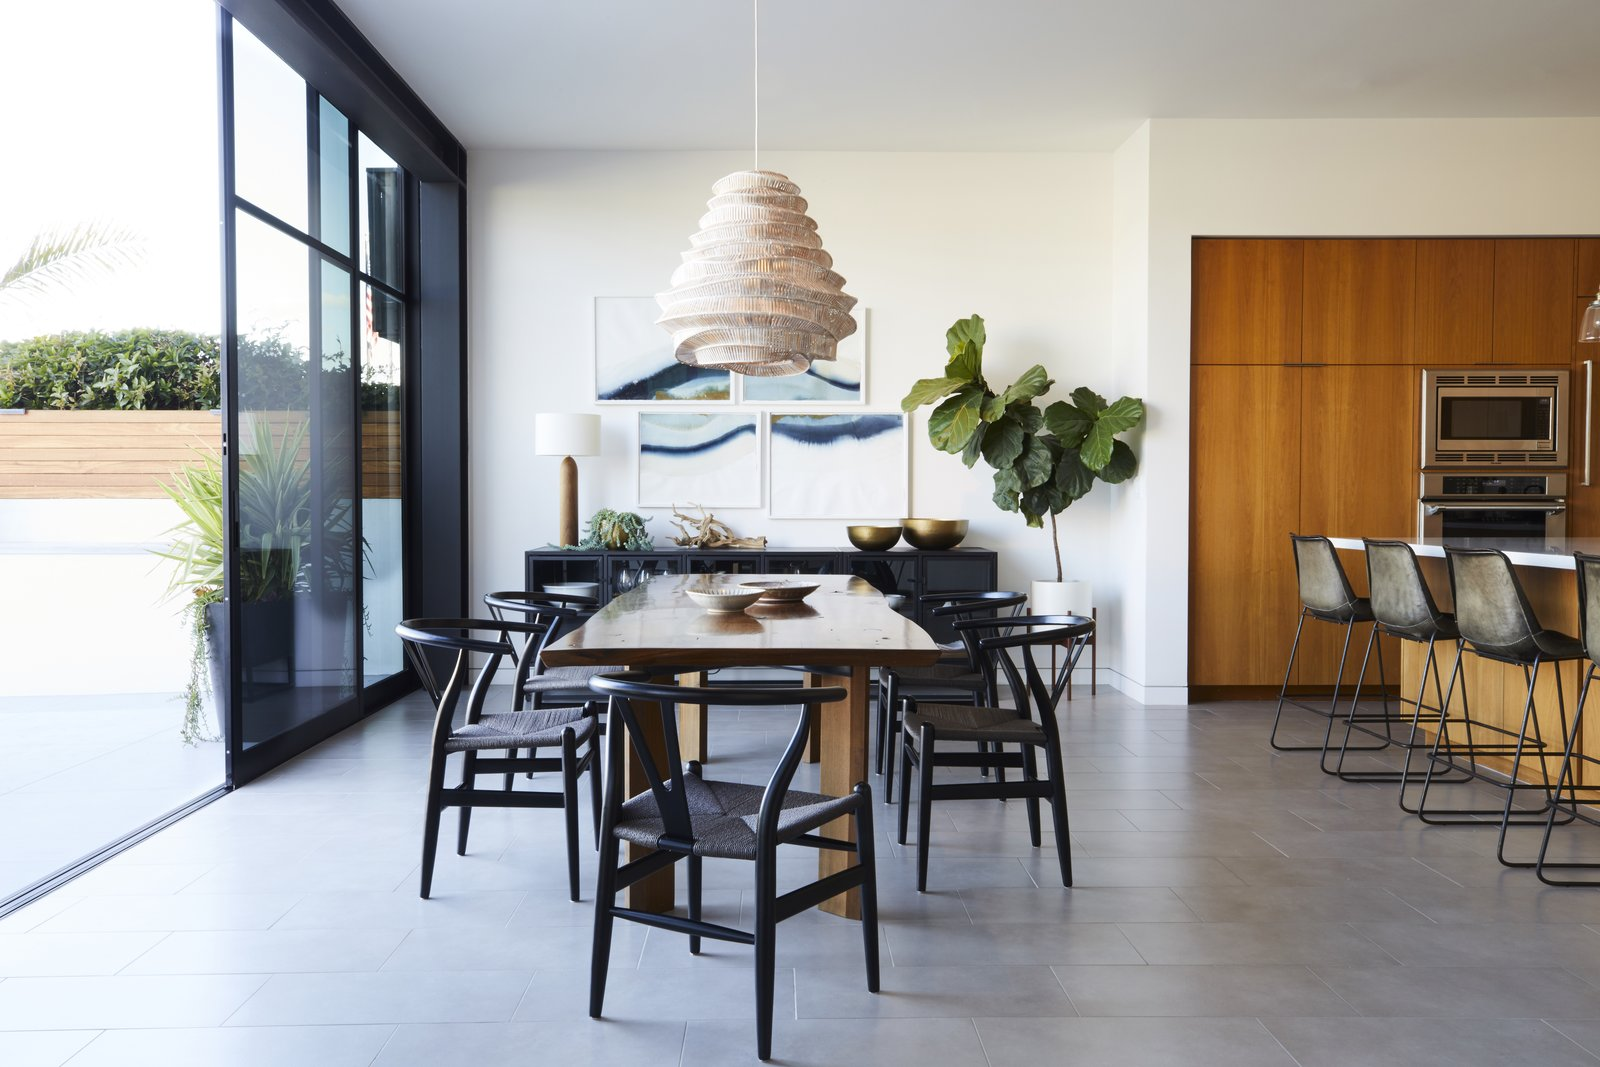 Dining Room, Lamps, Chair, Table, Stools, Storage, Pendant Lighting, Bar, and Table Lighting  Best Photos from This Renovation Will Make You Rethink the Typical Look of a California Beach House